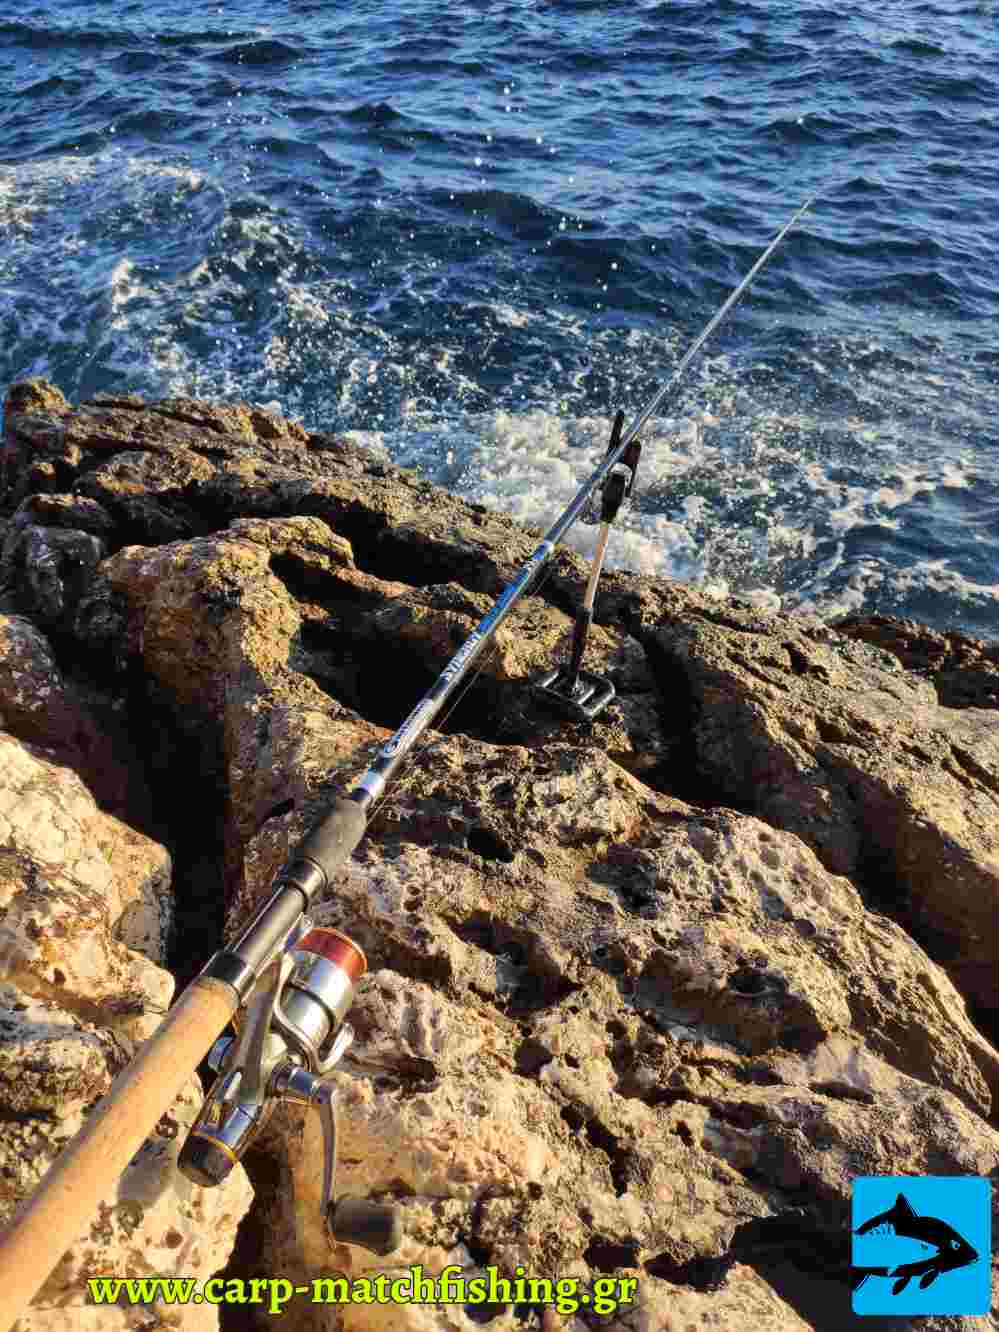 sea rock match fishing garbolino synergy carpmatchfishing